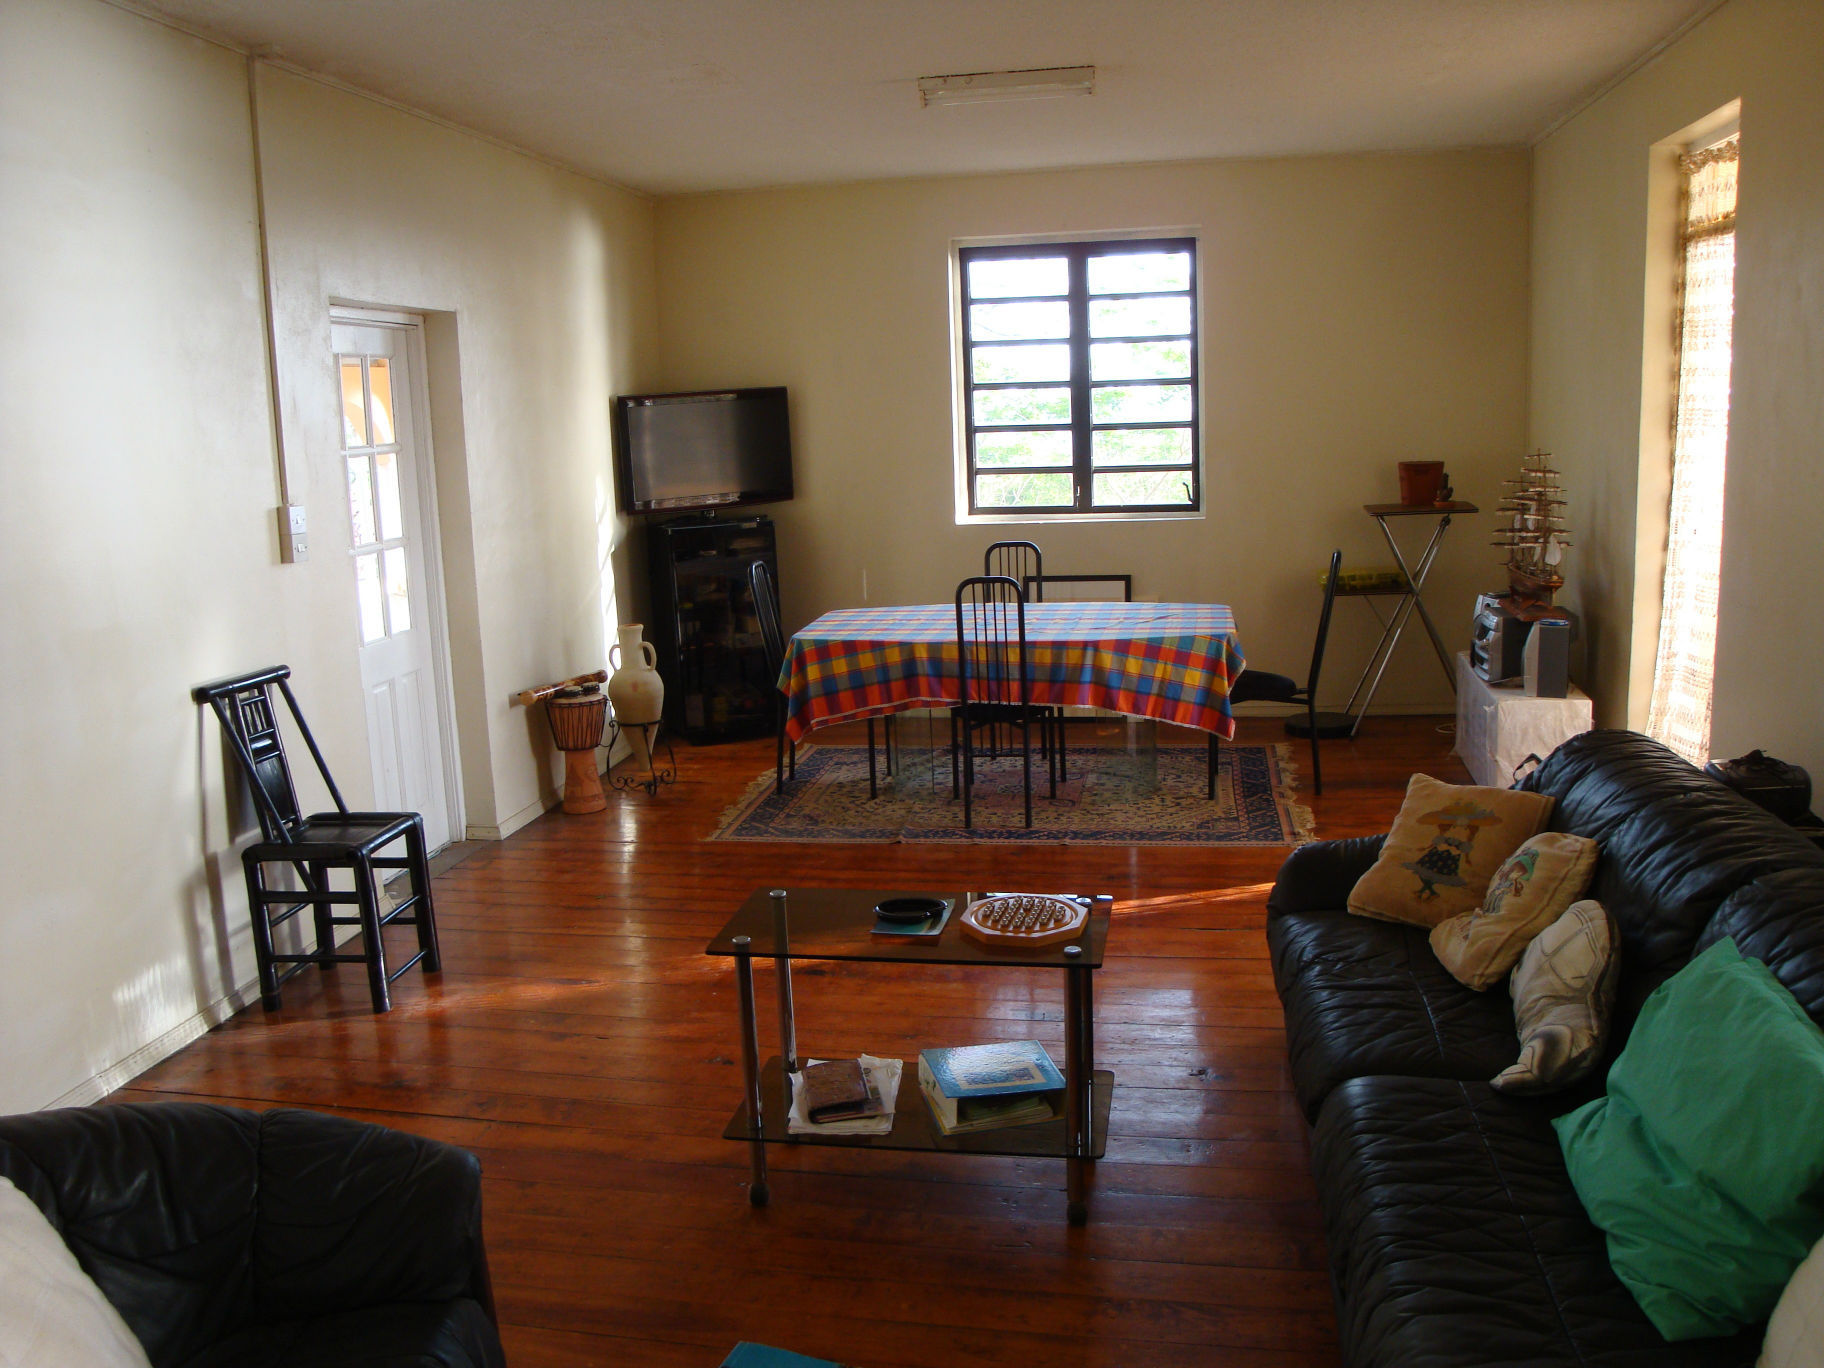 The two storeys of this 6 bedroom home for sale each have individual  living dining room spaces and multiple kitchenettes  The verandah design on  the grounds. 6 Bedroom Home For Sale In Castle Comfort  Dominica At